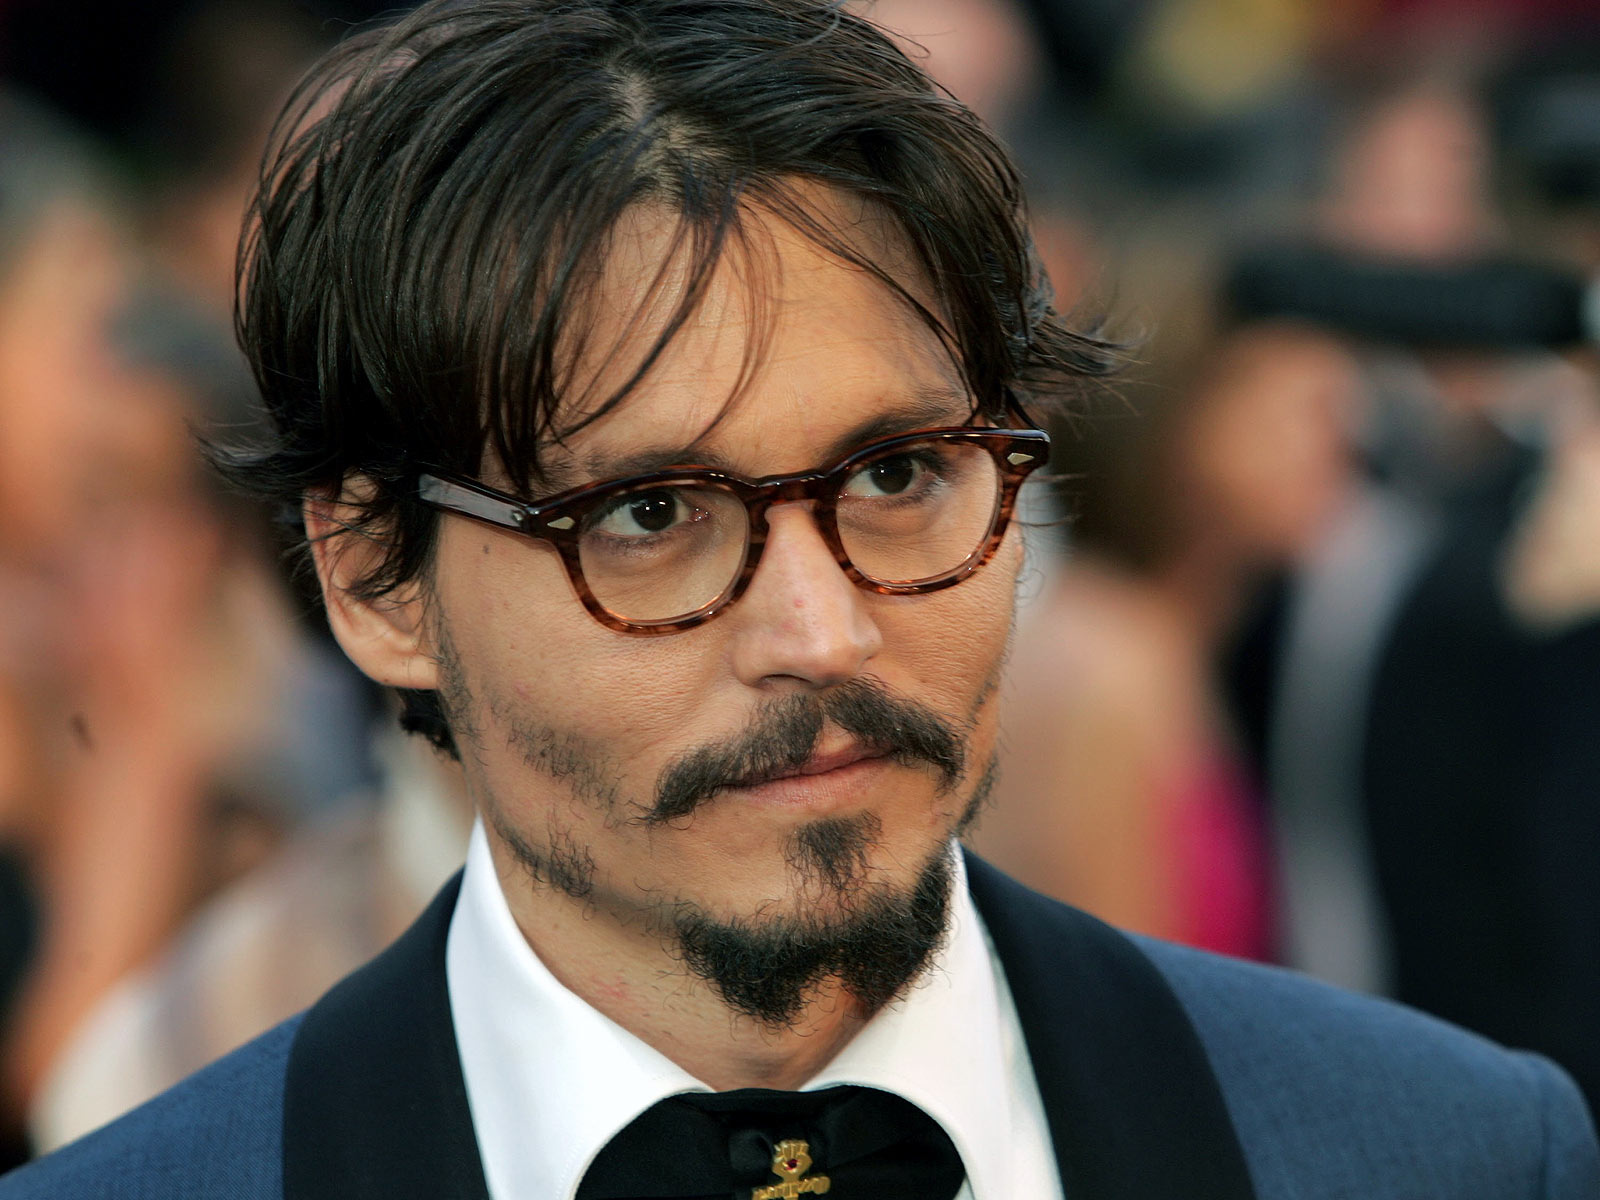 Fondos De Pantalla De Johnny Depp Wallpapers Hd Gratis